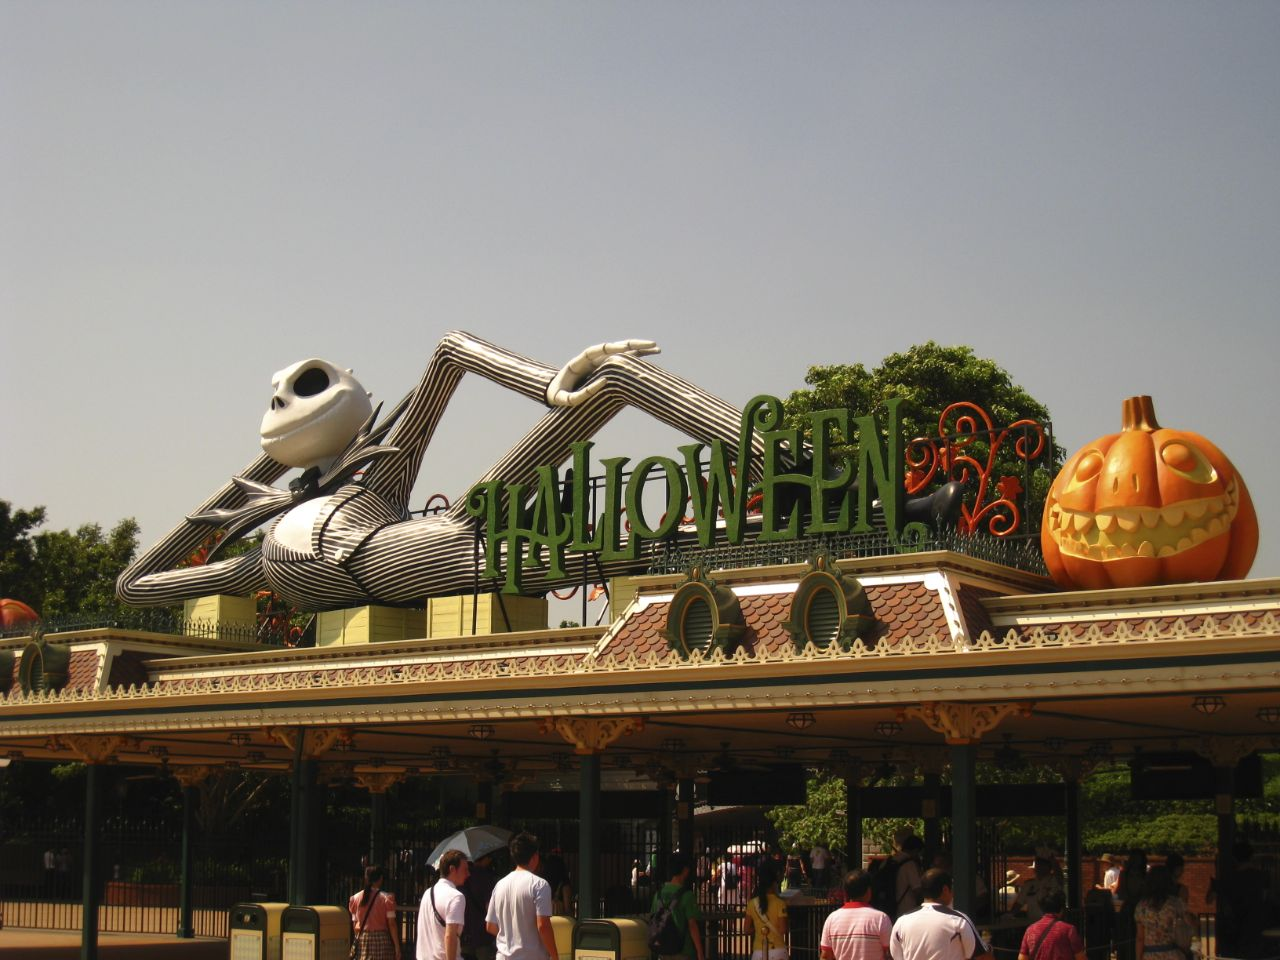 The Main gate with a Halloween theme